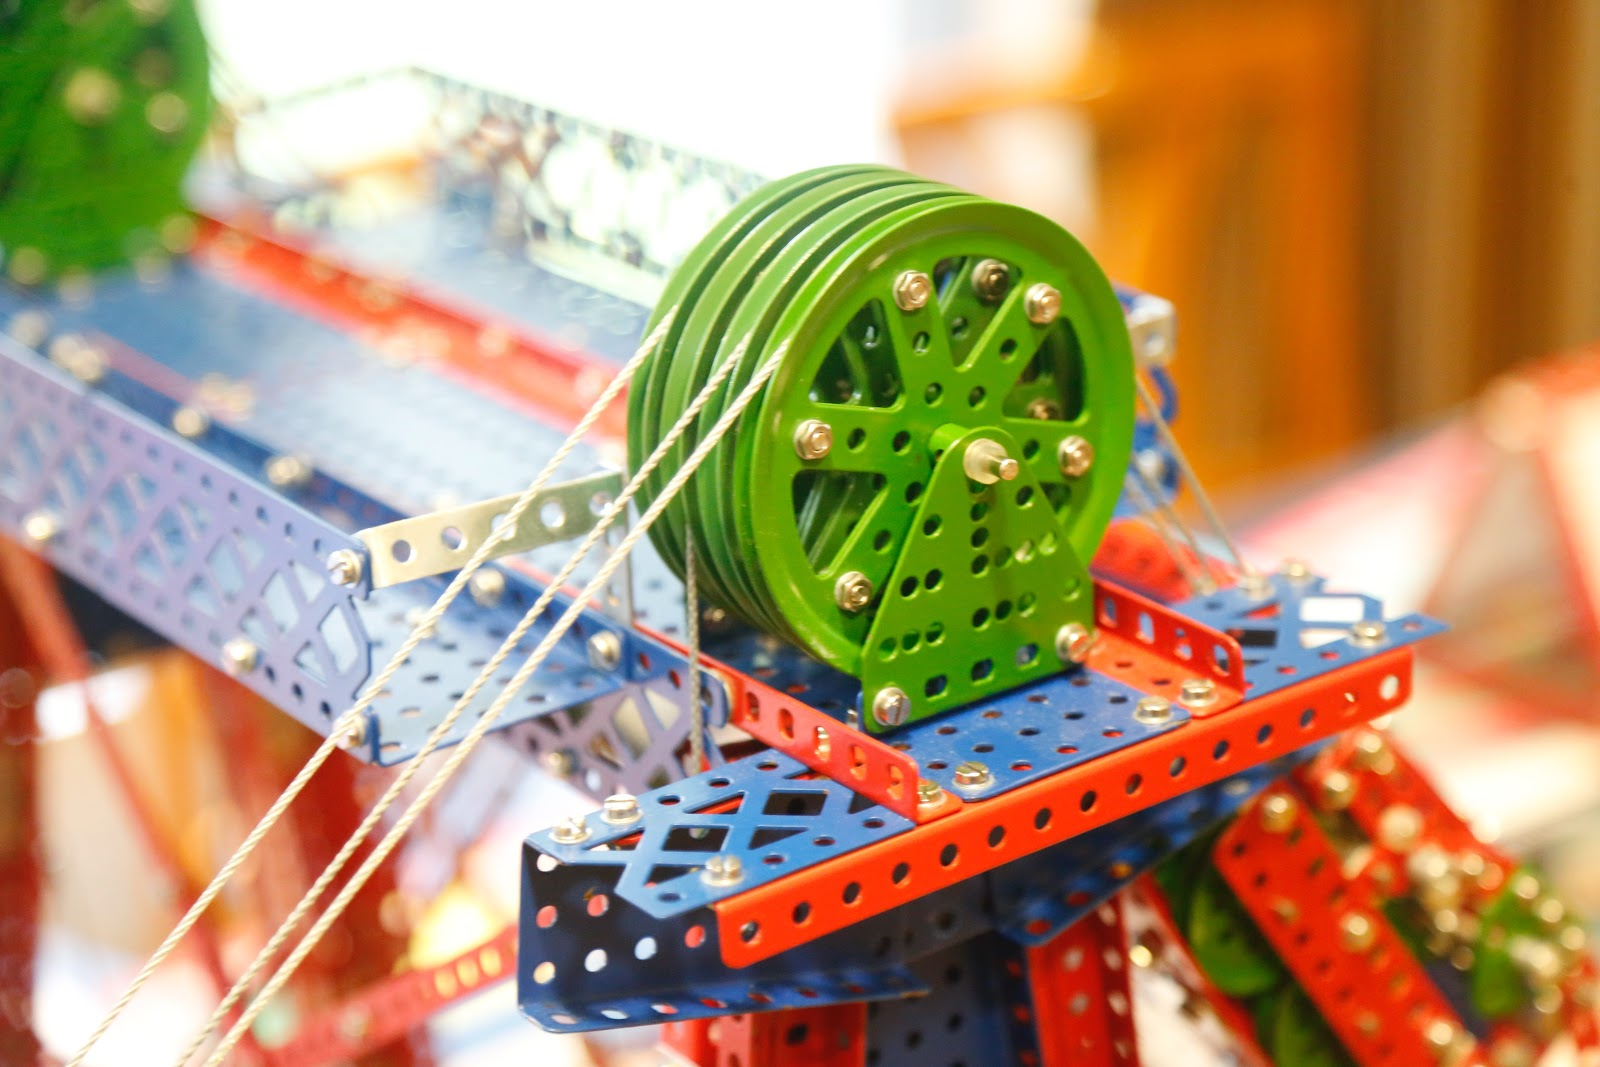 This is a close up view of a pulley and cables attached to a children's engineering toy that looks similar to the popular Erector Set.